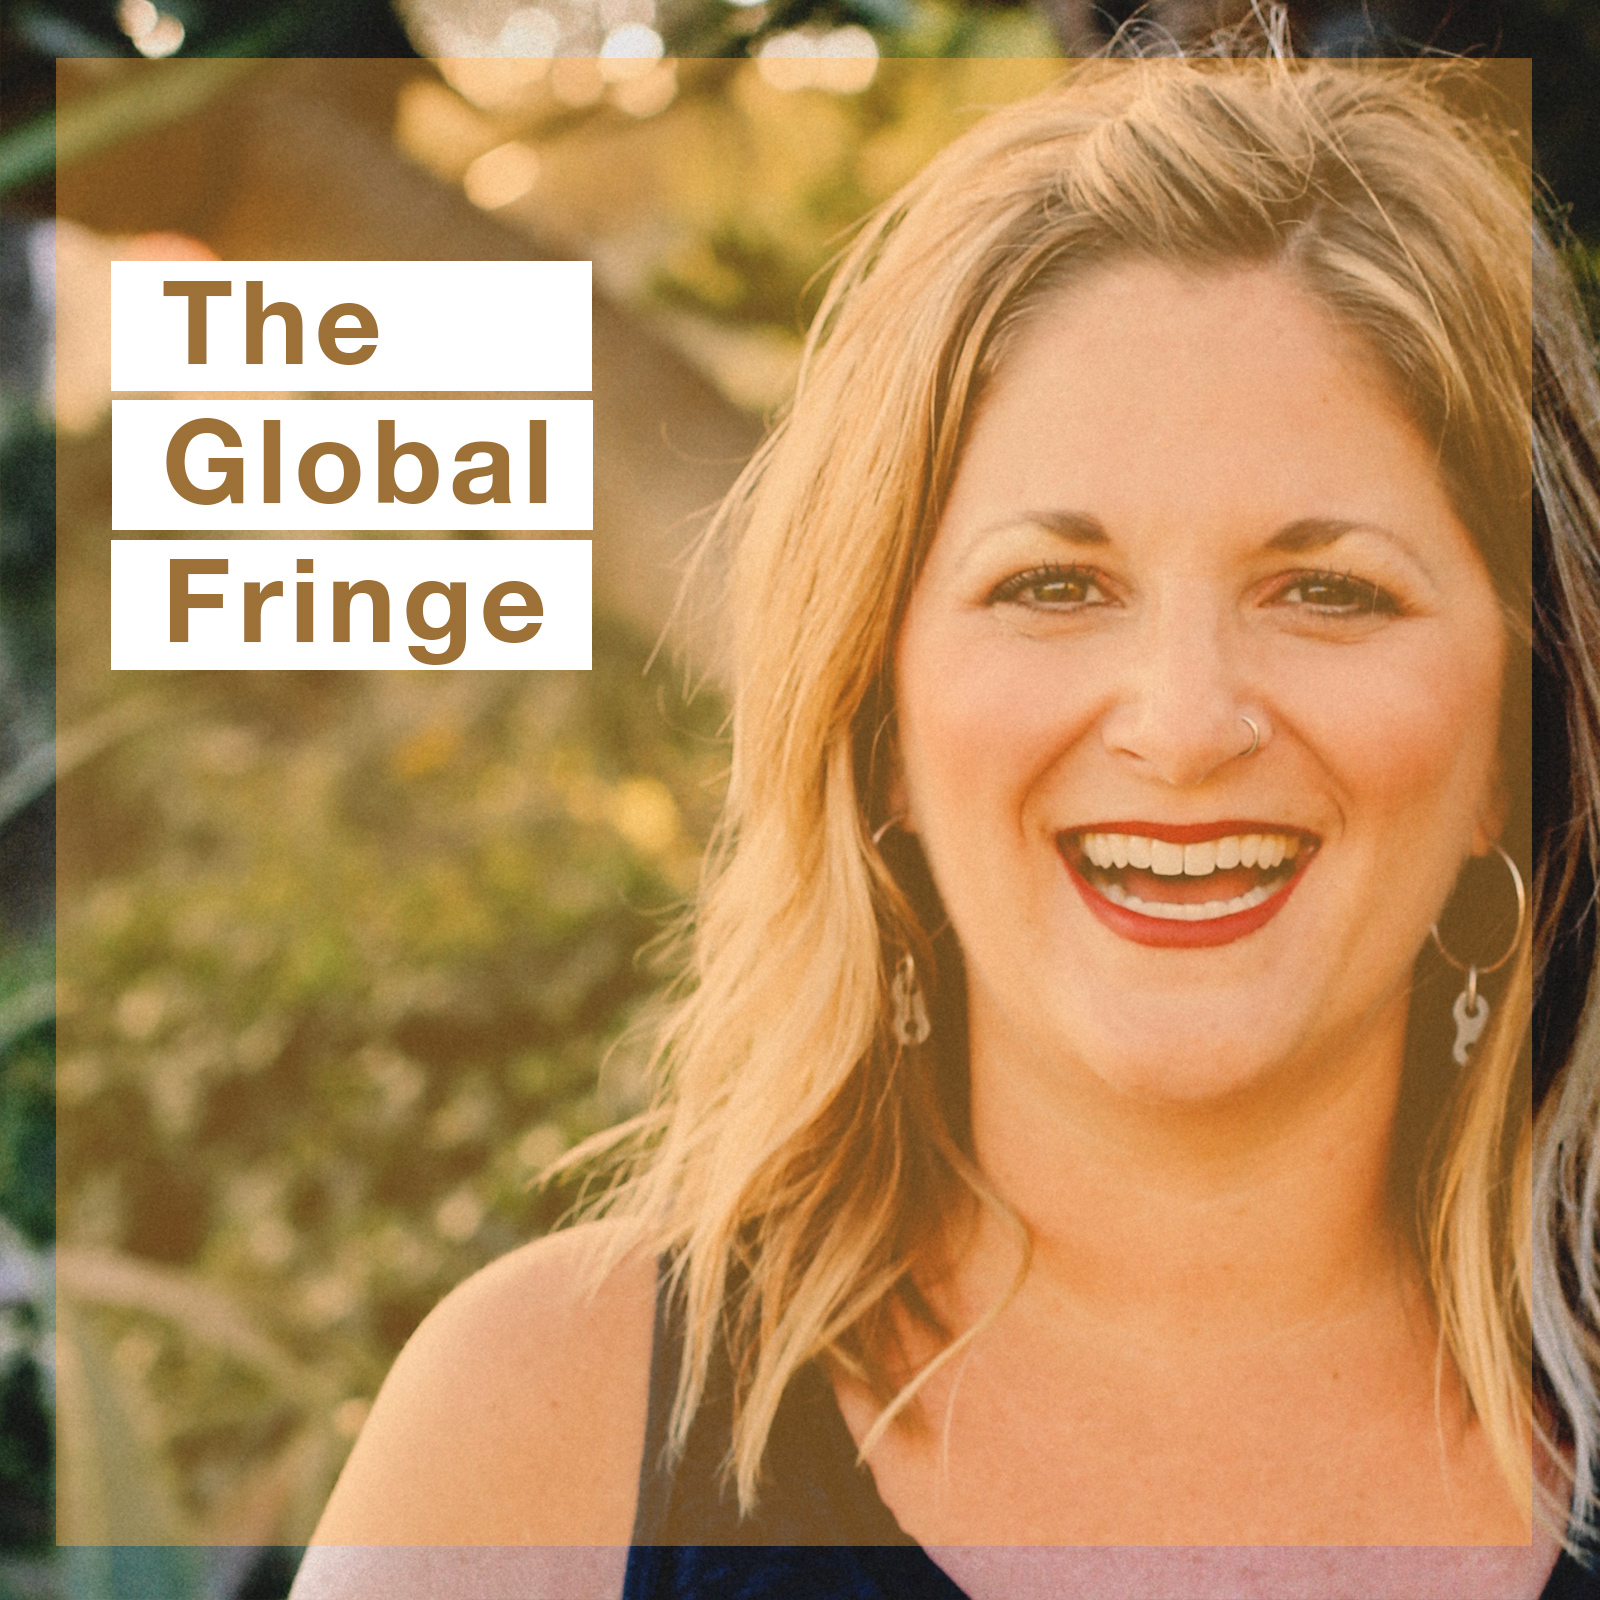 001 - The Global Fringe: April Diaz